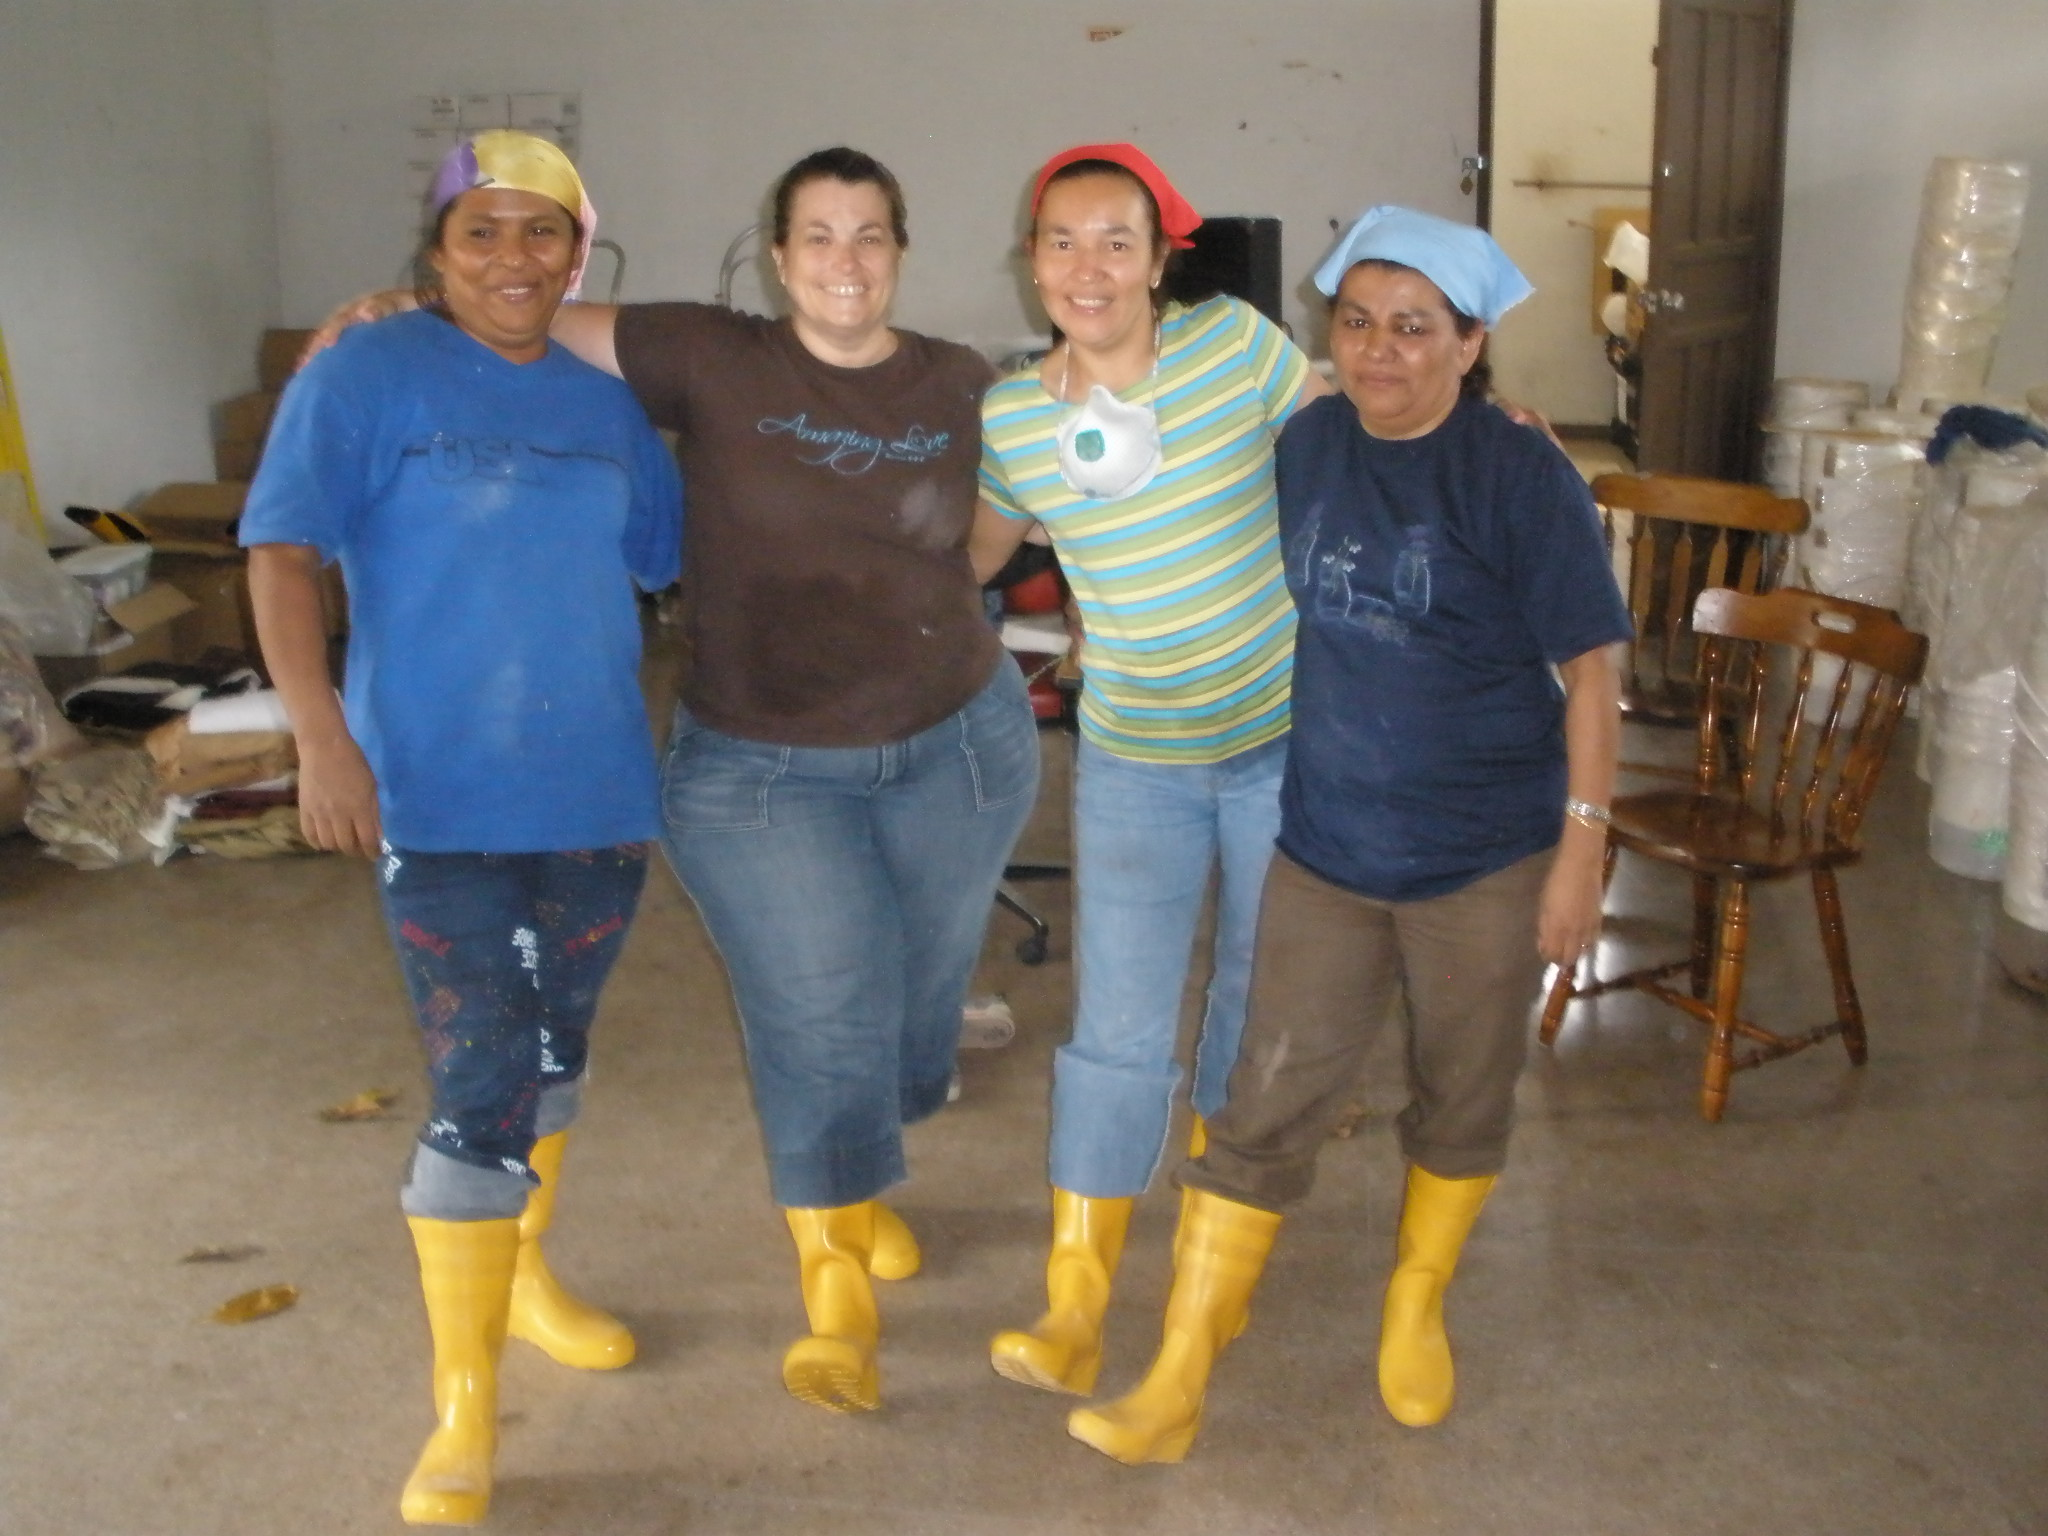 Founder Lori Connell, Cecila, Sonya and Maria working to renovate the new space.